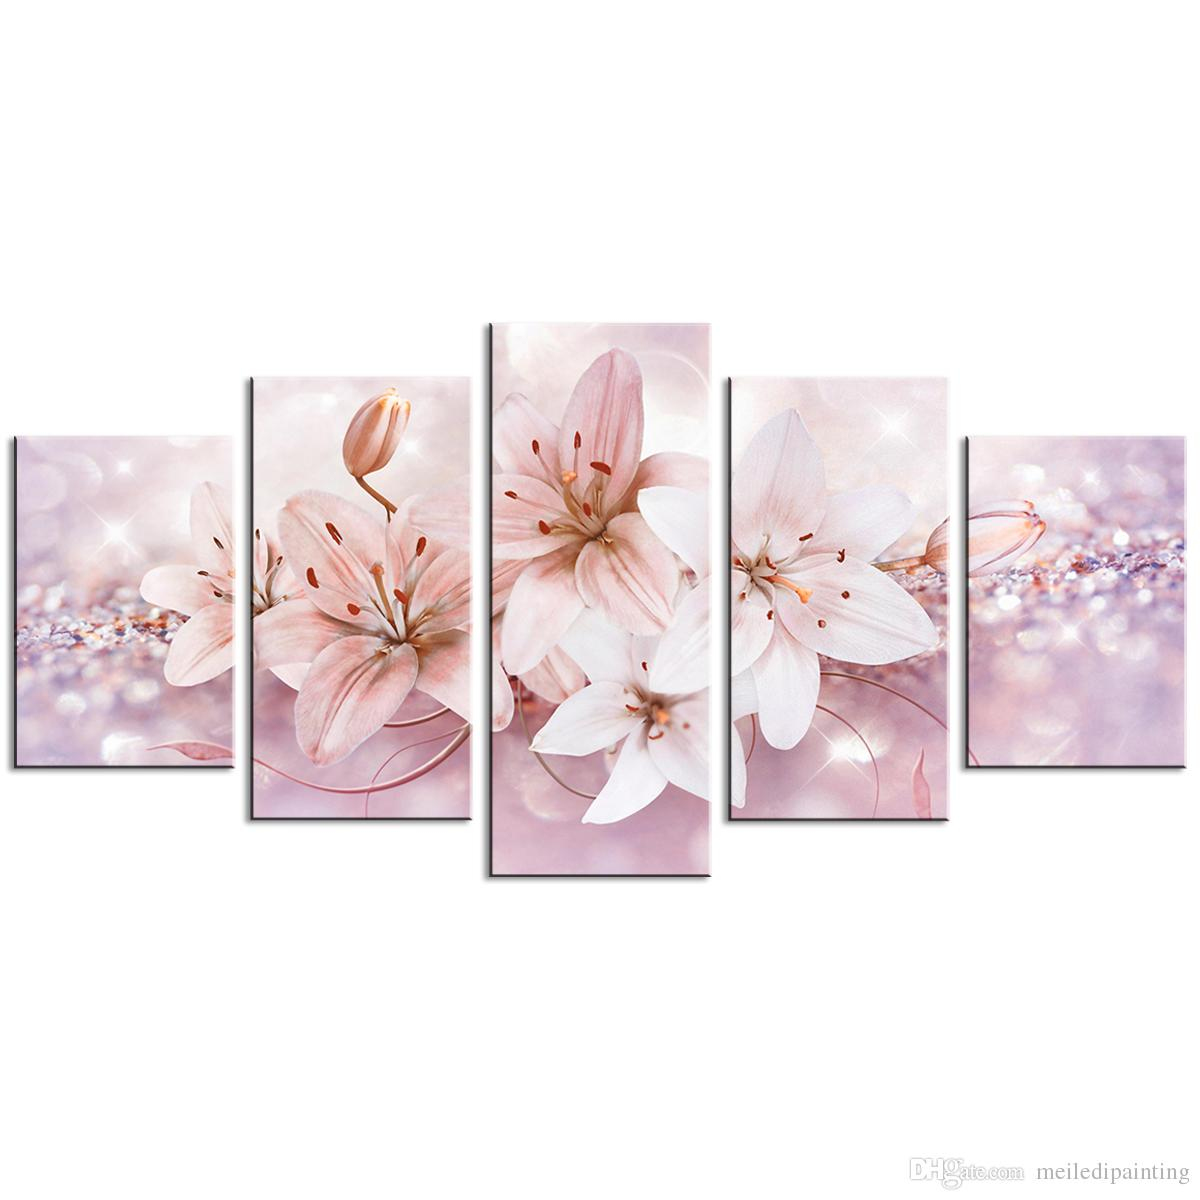 5 Pieces Lily Flower Wall Art Painting Starlight Background Picture Fashion Contemporary Wall Art For Home Decor With Wooden Framed